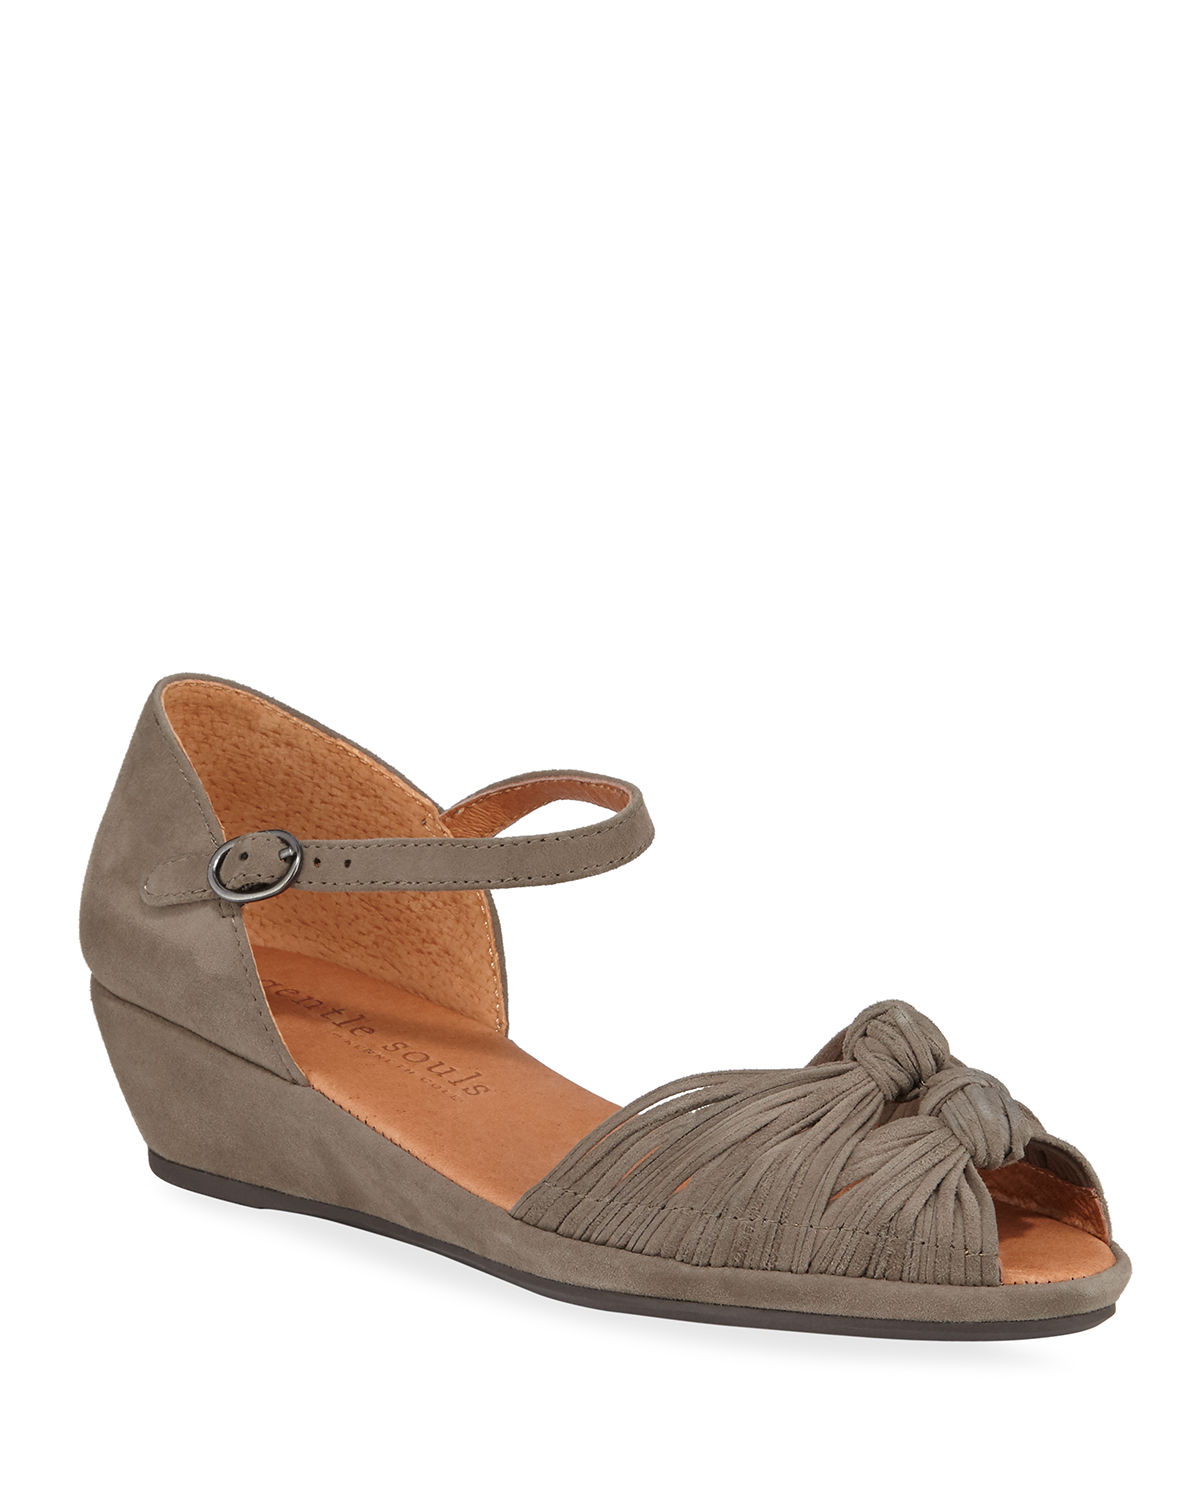 Lily Knot Suede Wedge Sandals